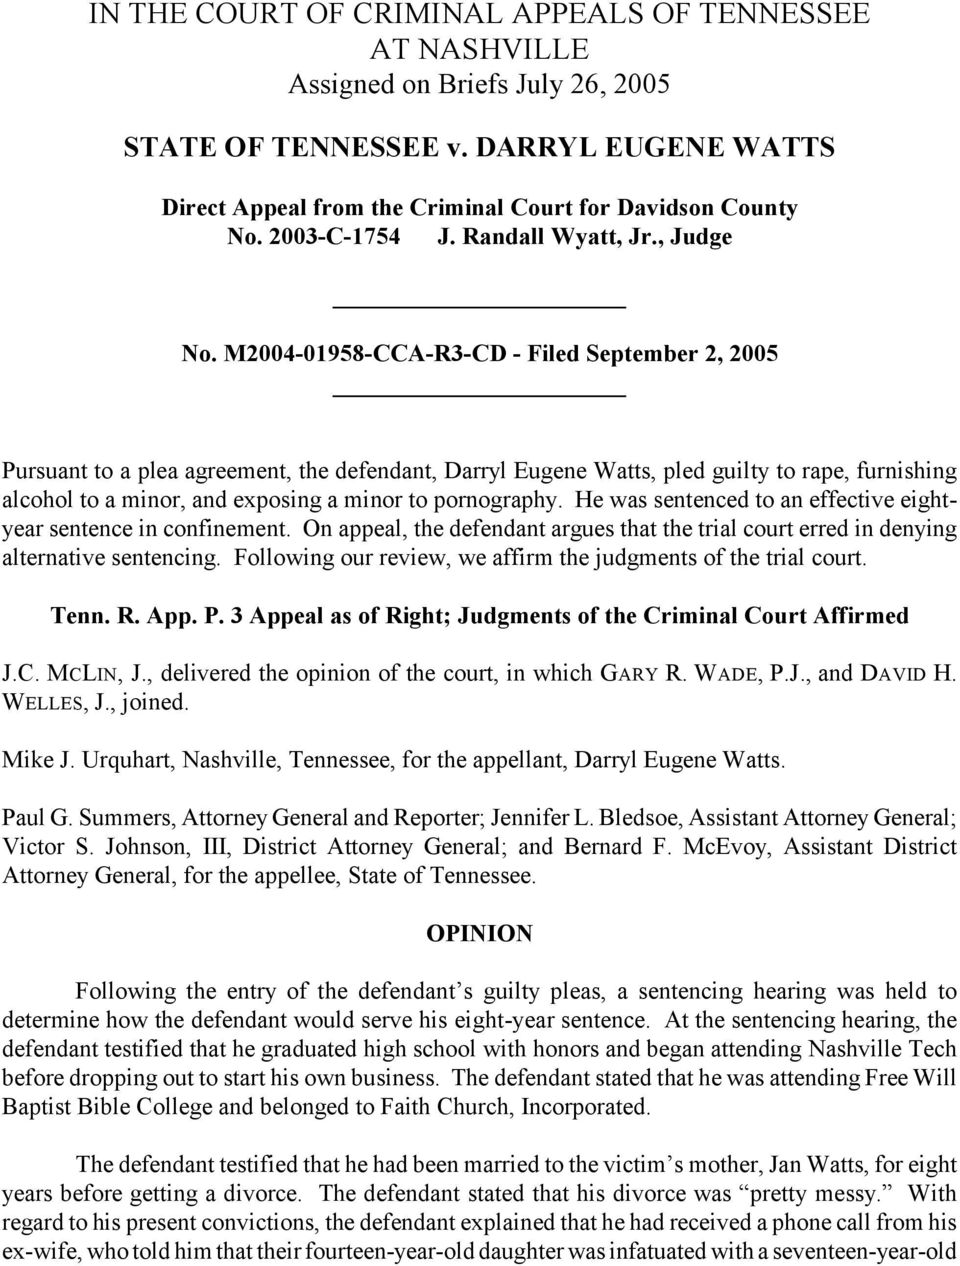 M2004-01958-CCA-R3-CD - Filed September 2, 2005 Pursuant to a plea agreement, the defendant, Darryl Eugene Watts, pled guilty to rape, furnishing alcohol to a minor, and exposing a minor to